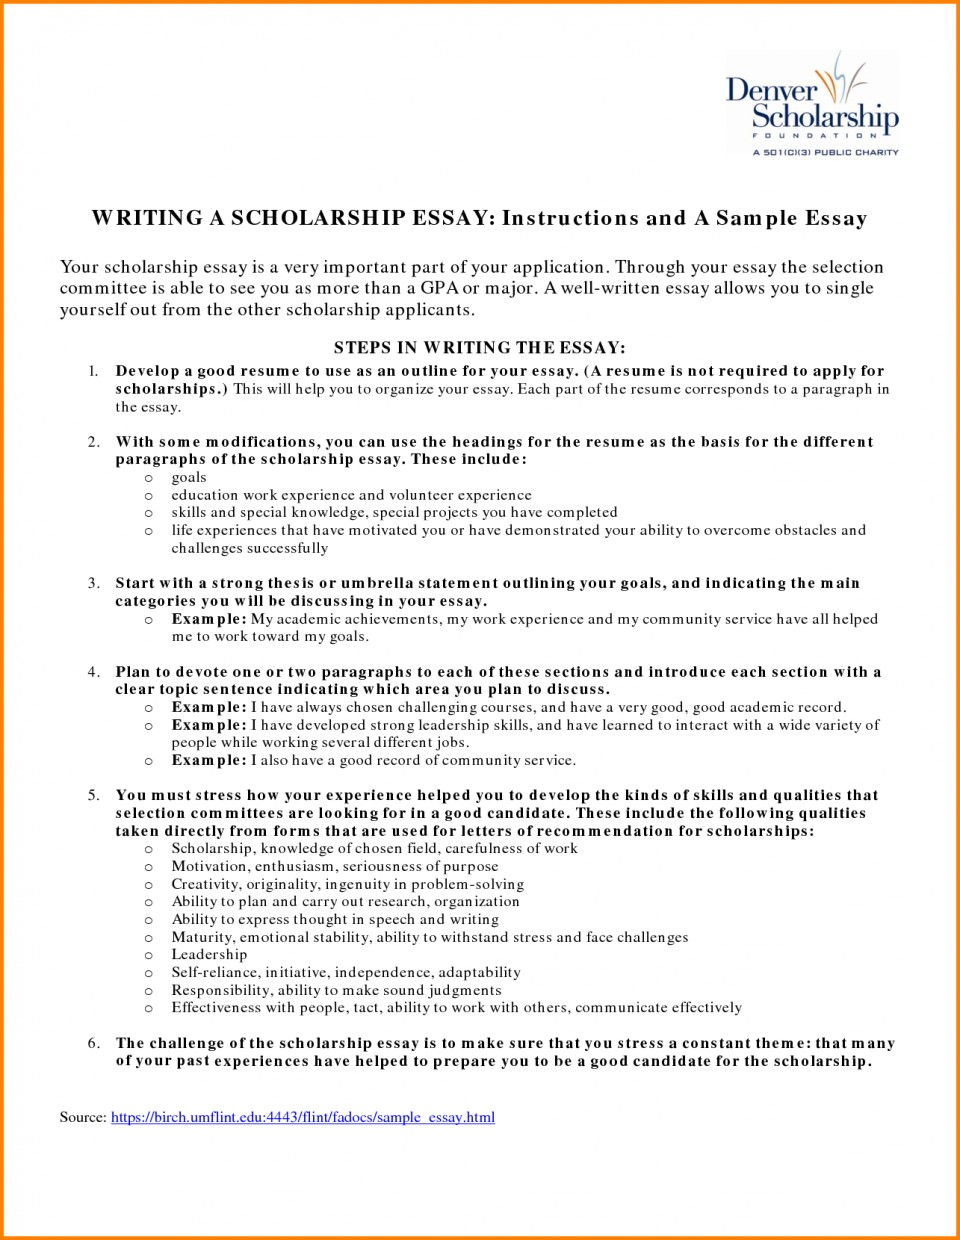 009 Essay Example Fair Resume Examples For Scholarships In Scholarship Sample Of Awful Essays Masters On Financial Need 960